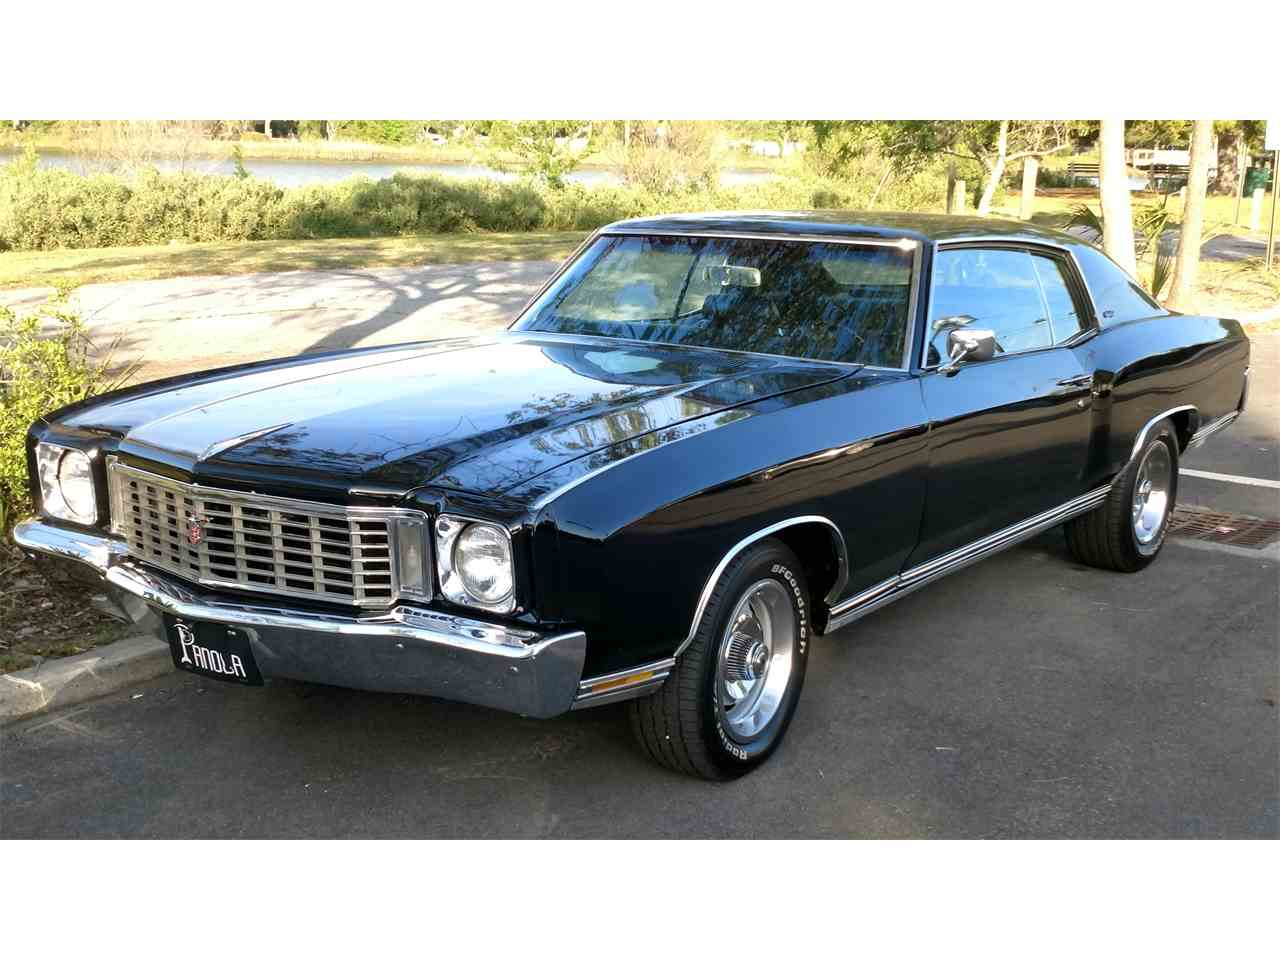 Large Picture of '72 Chevrolet Monte Carlo Offered by a Private Seller - KZFB